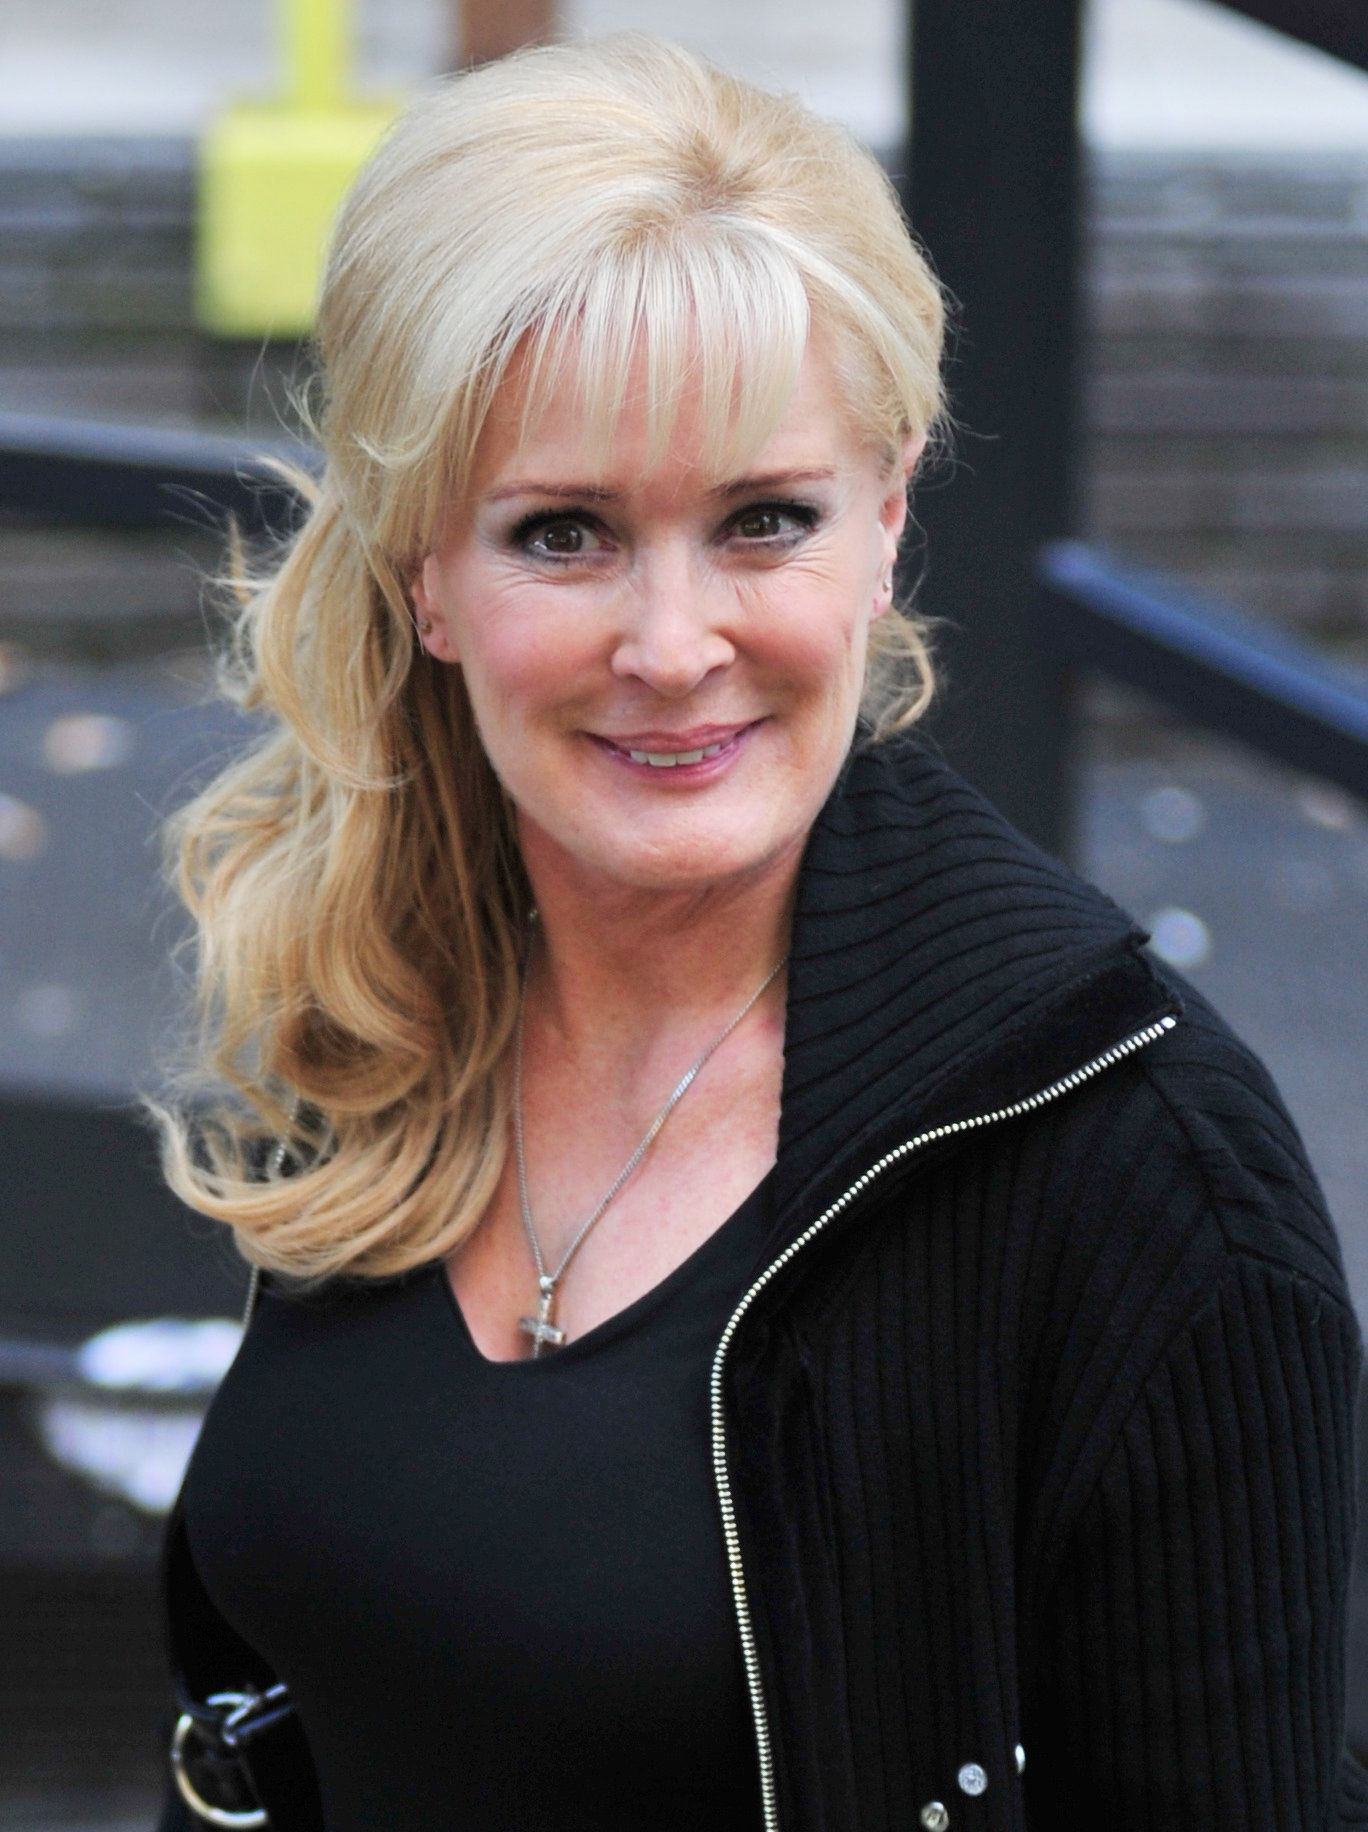 'Coronation Street': Beverley Callard Tweets About Depression After 'Being Signed Off